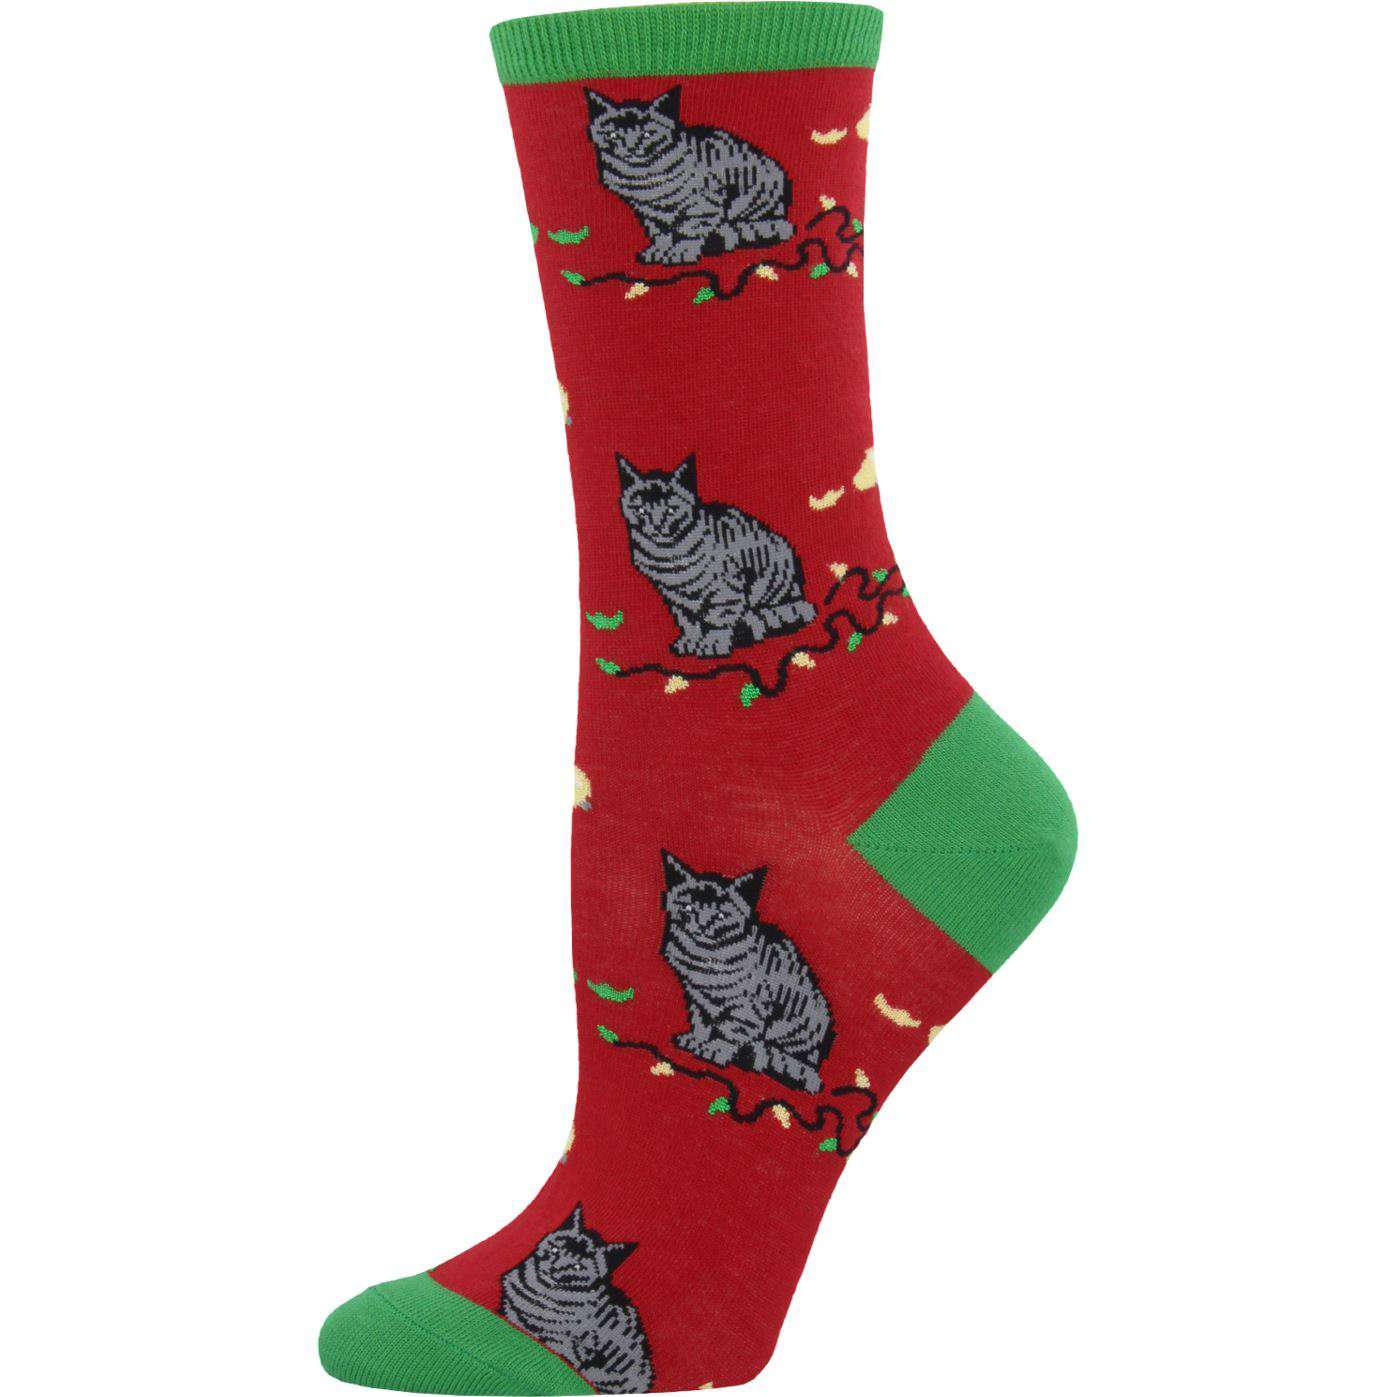 Sock Smith Holiday Socks Red / Women's 4 - 10 Christmas Cat-Astrophe Socks  | Crew Socks for Women